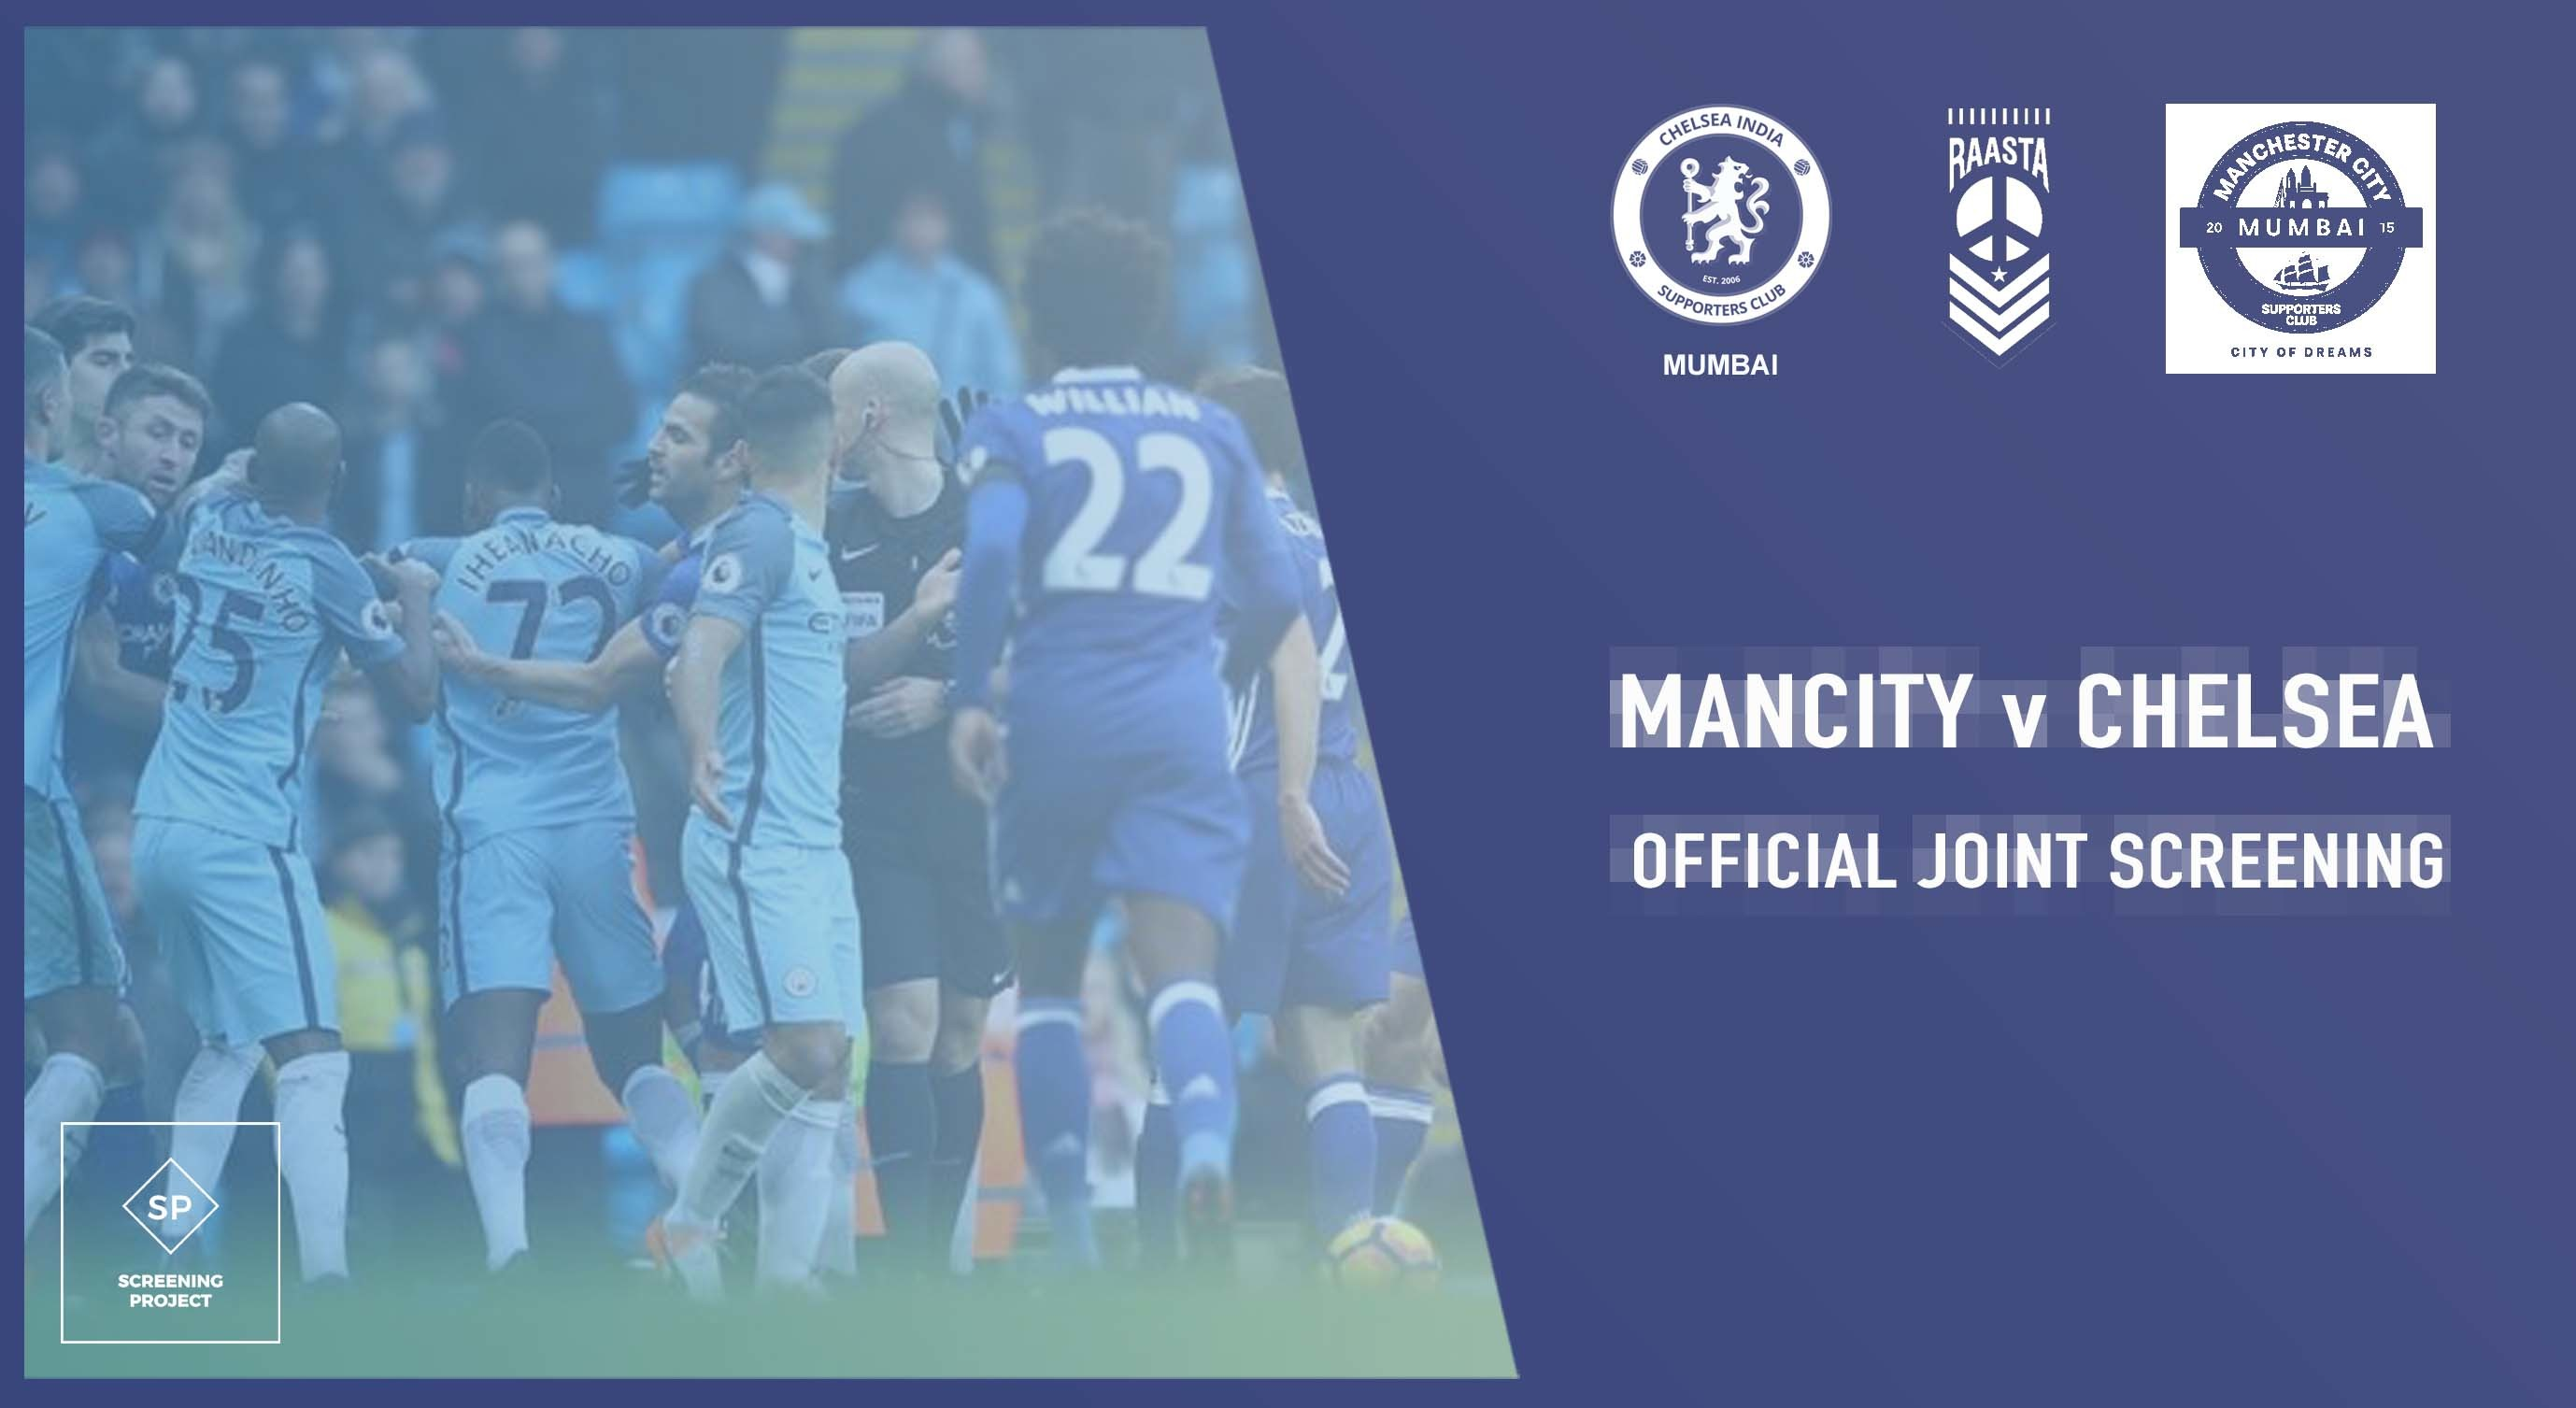 Mancity Vs Chelsea: Book Tickets To Mancity V Chelsea Official Joint Screening